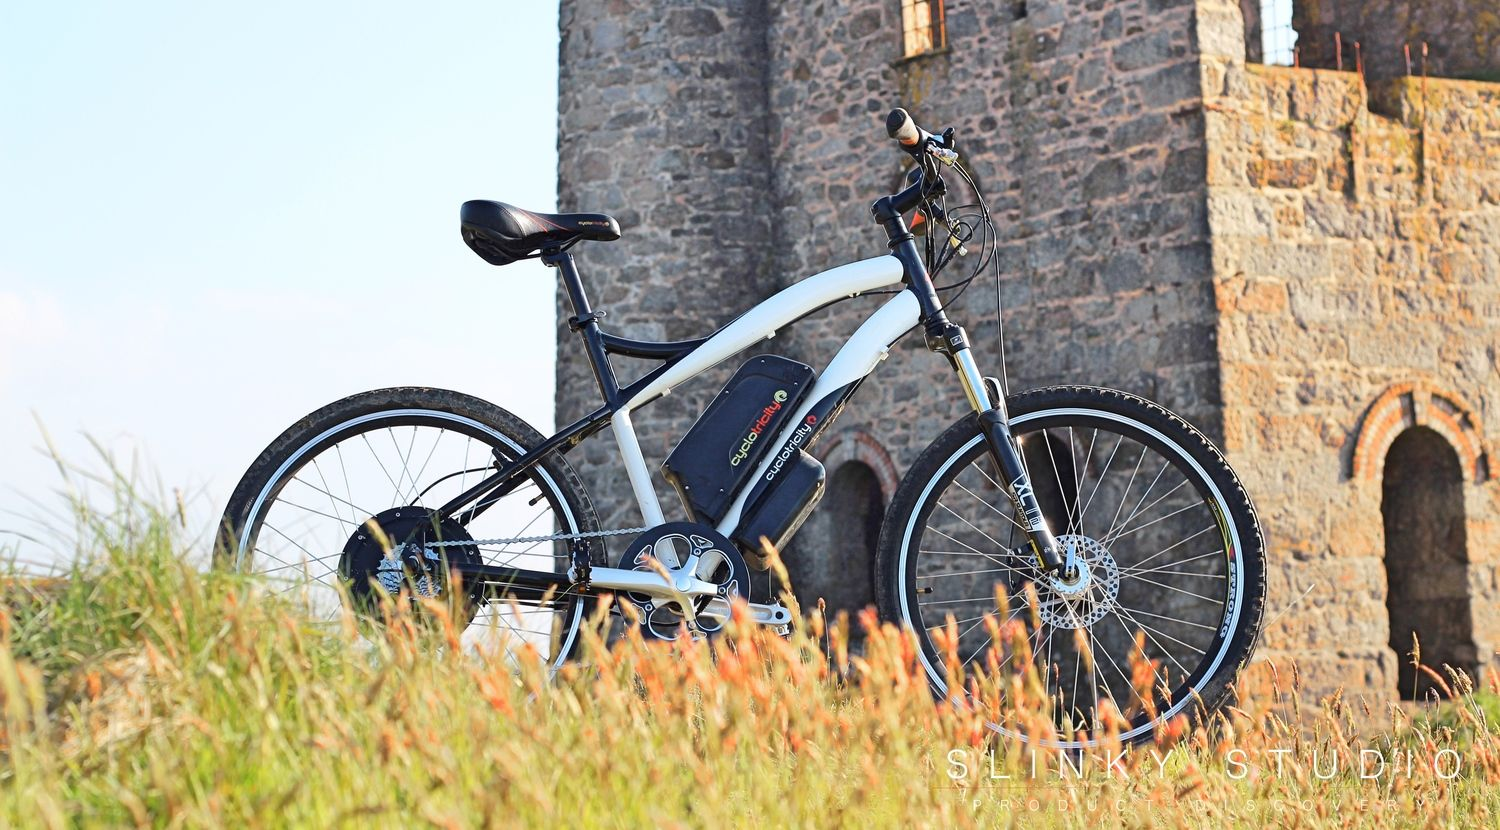 86e431eb740 Cyclotricity Stealth eBike Standing Outside Cornwall Tin Mine An insanely  powerful adrenaline pumping  eBike - Cyclotricity Stealth 1000W eBike Review